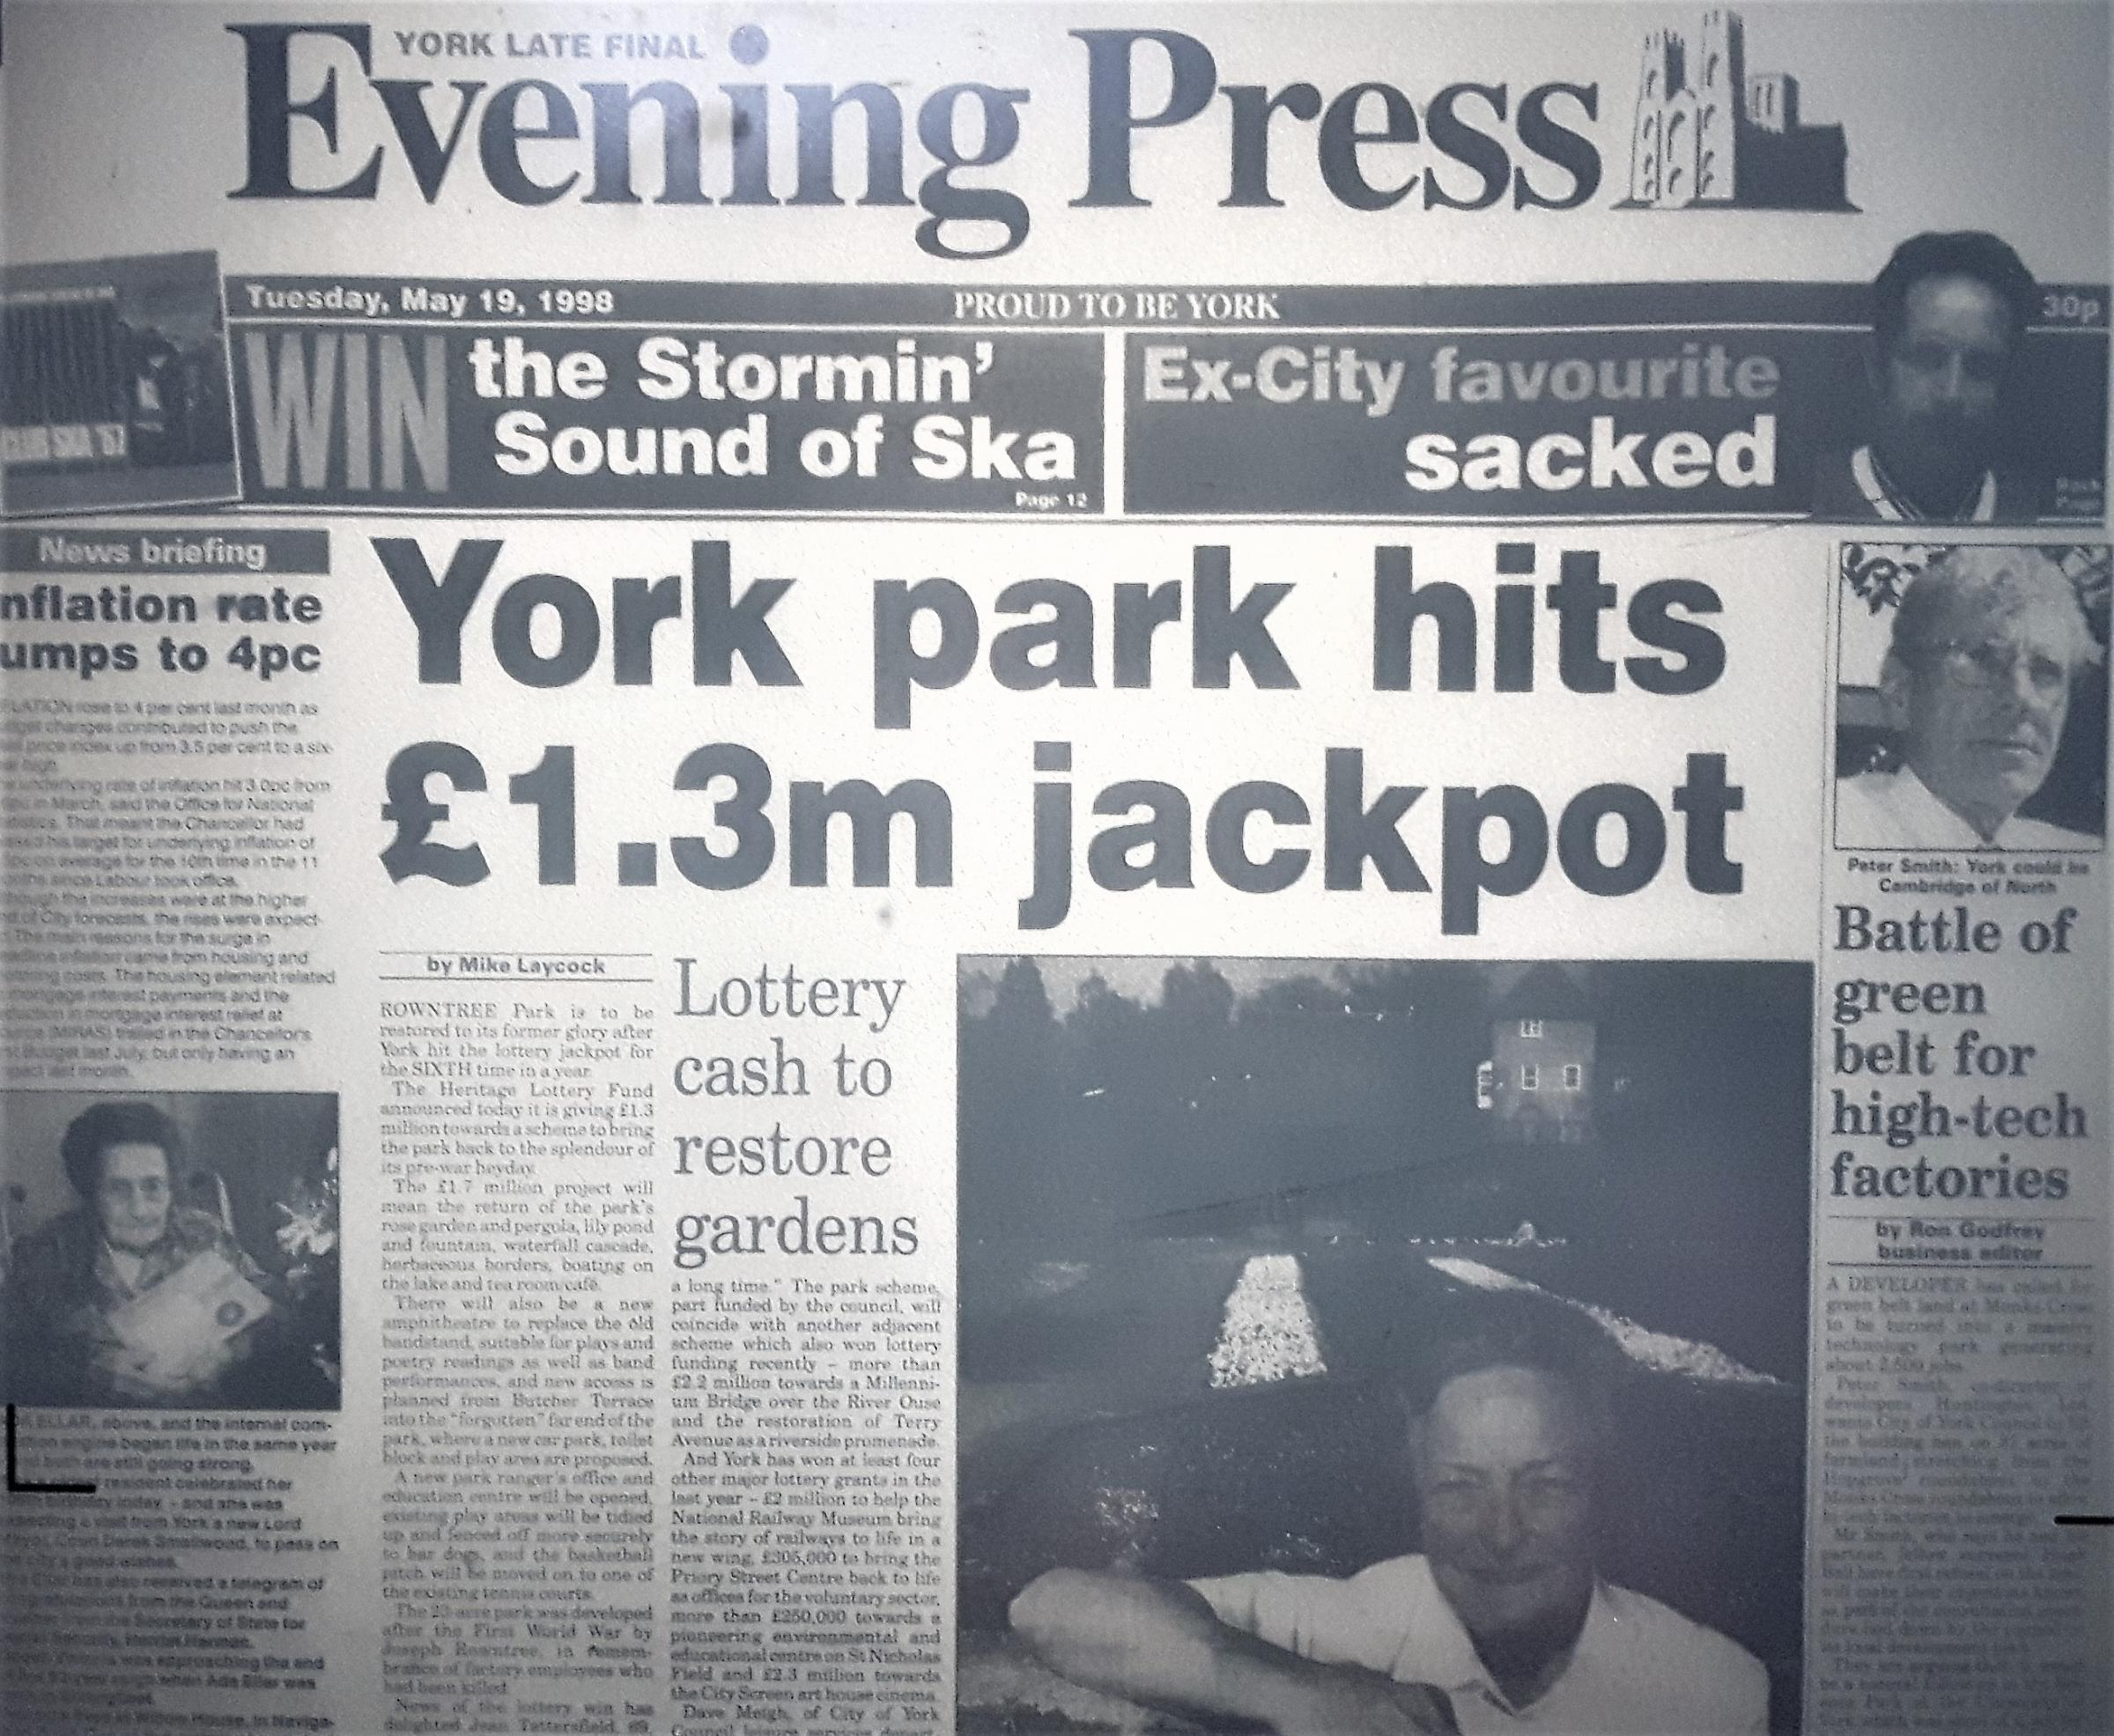 The Evening Press front page from May 19, 1998